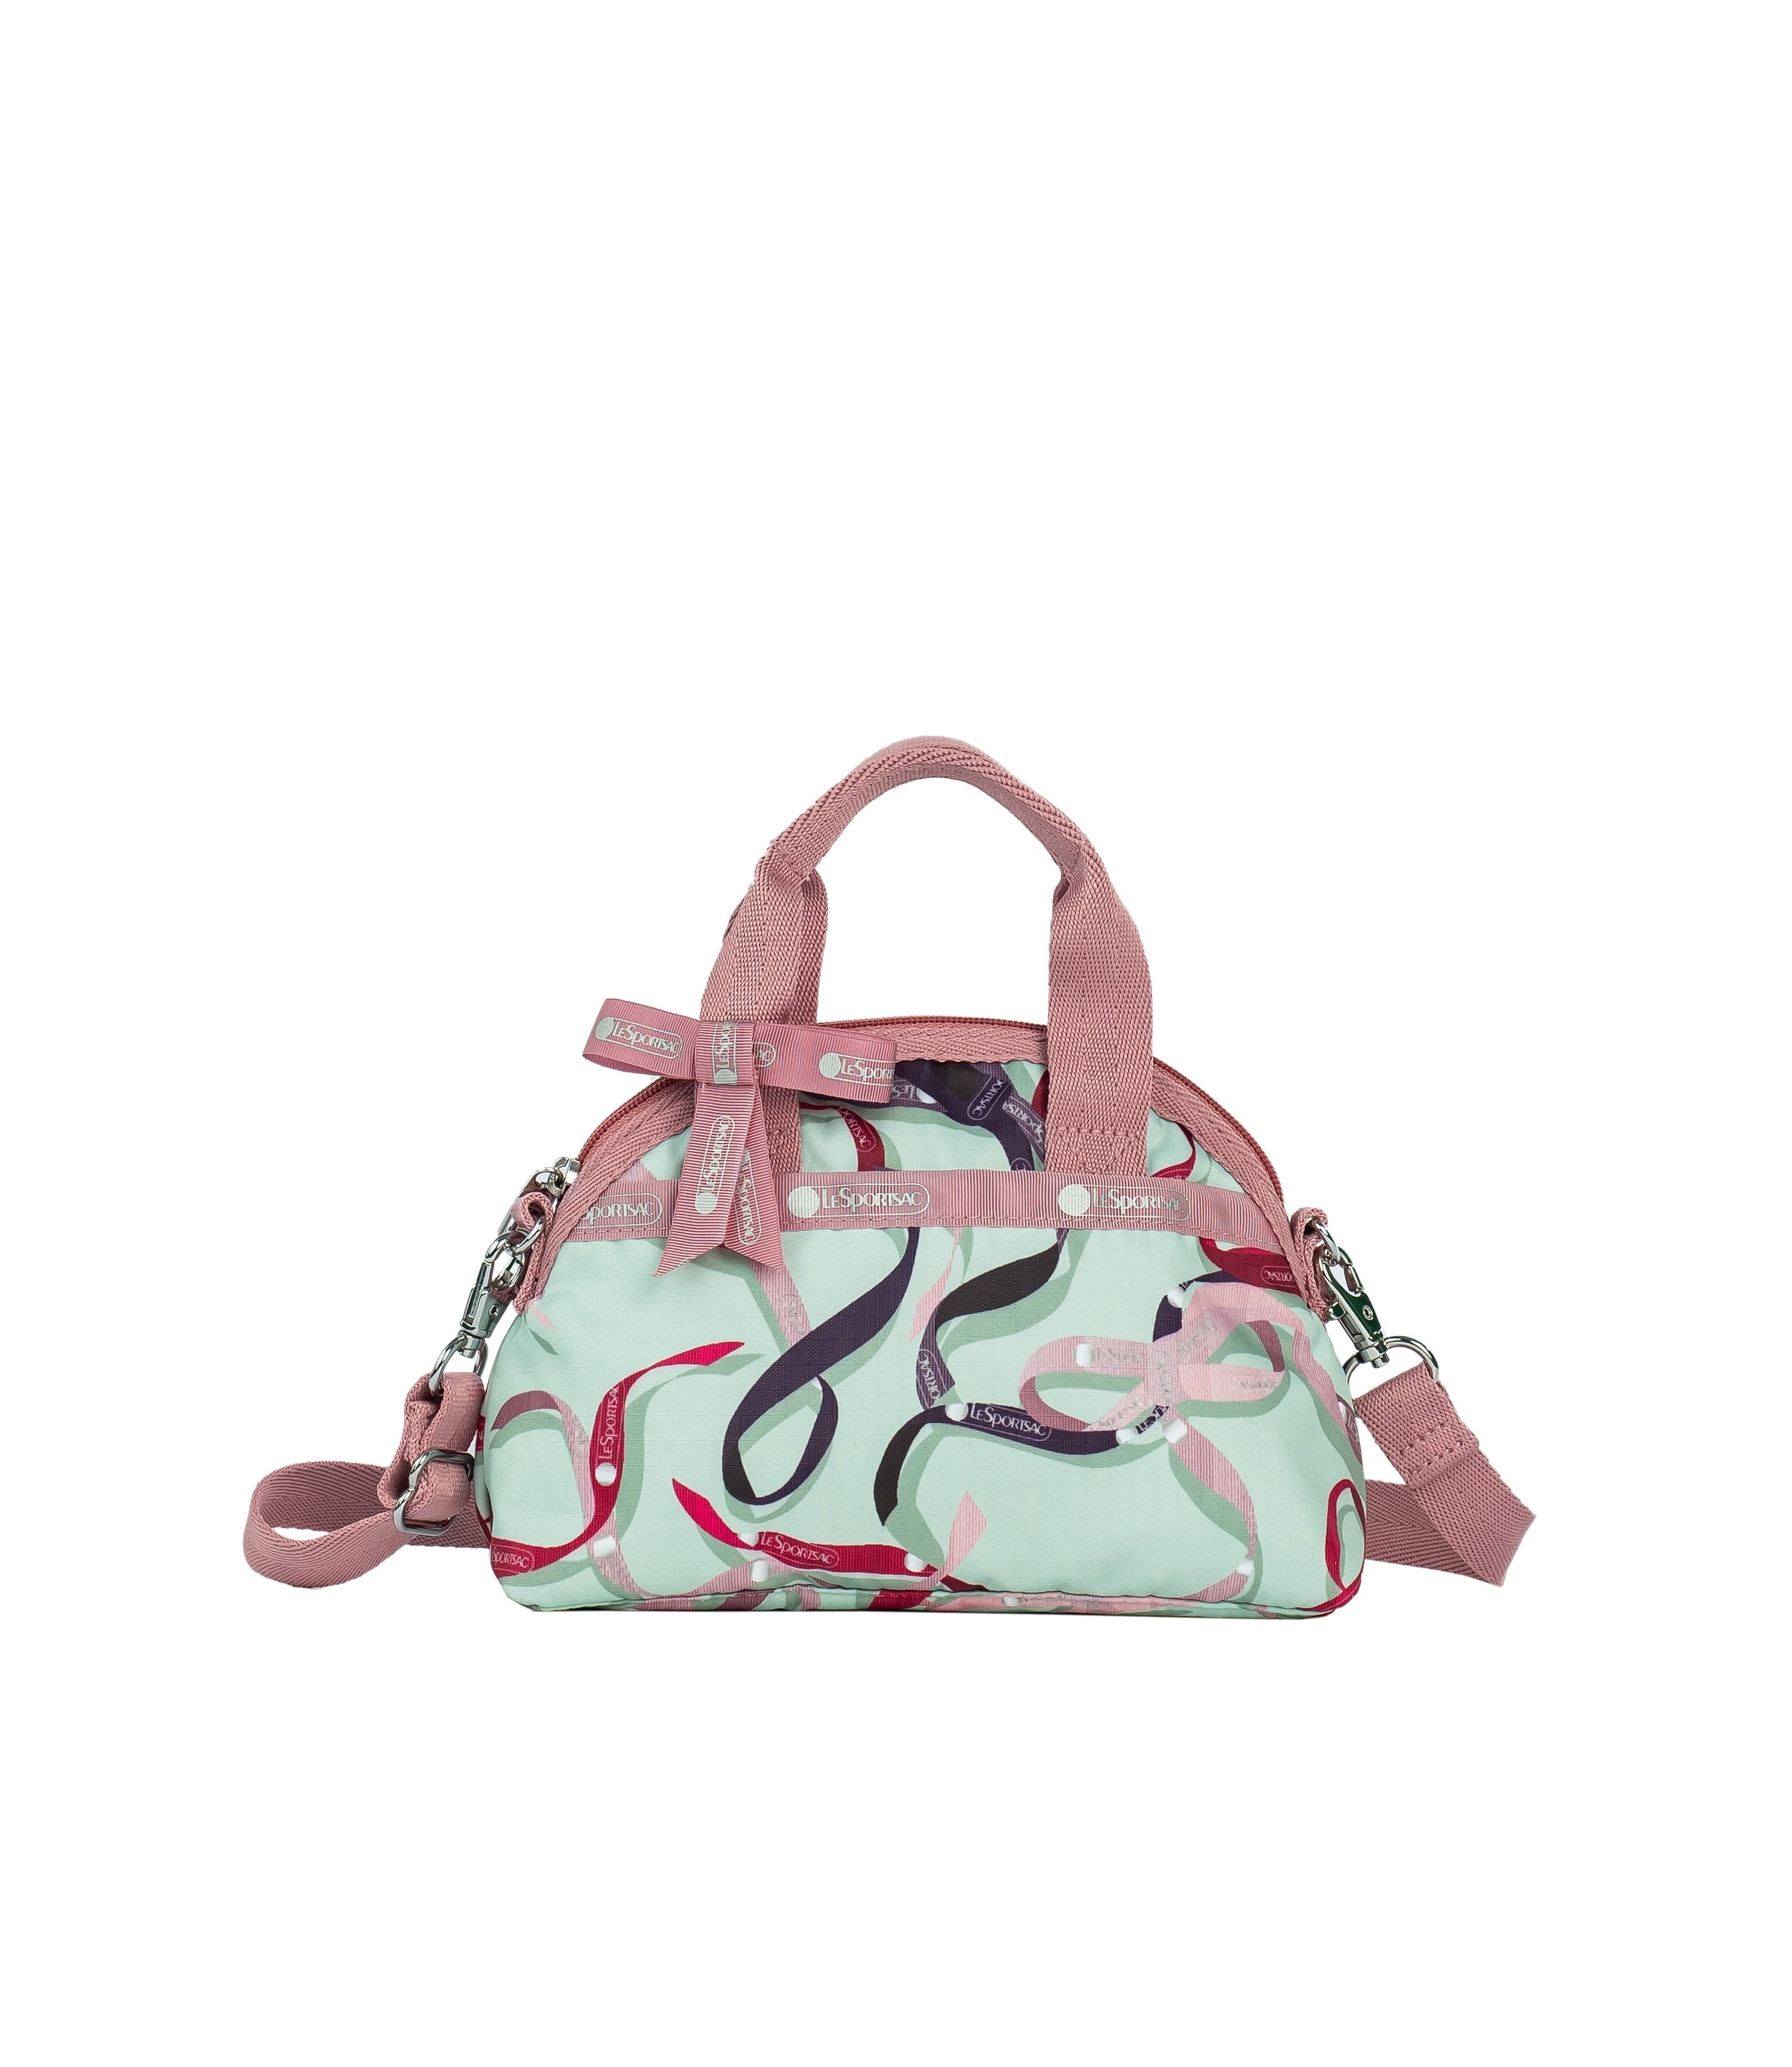 LeSportsac - Handbags - Bow Mini York Satchel - Ribbons print